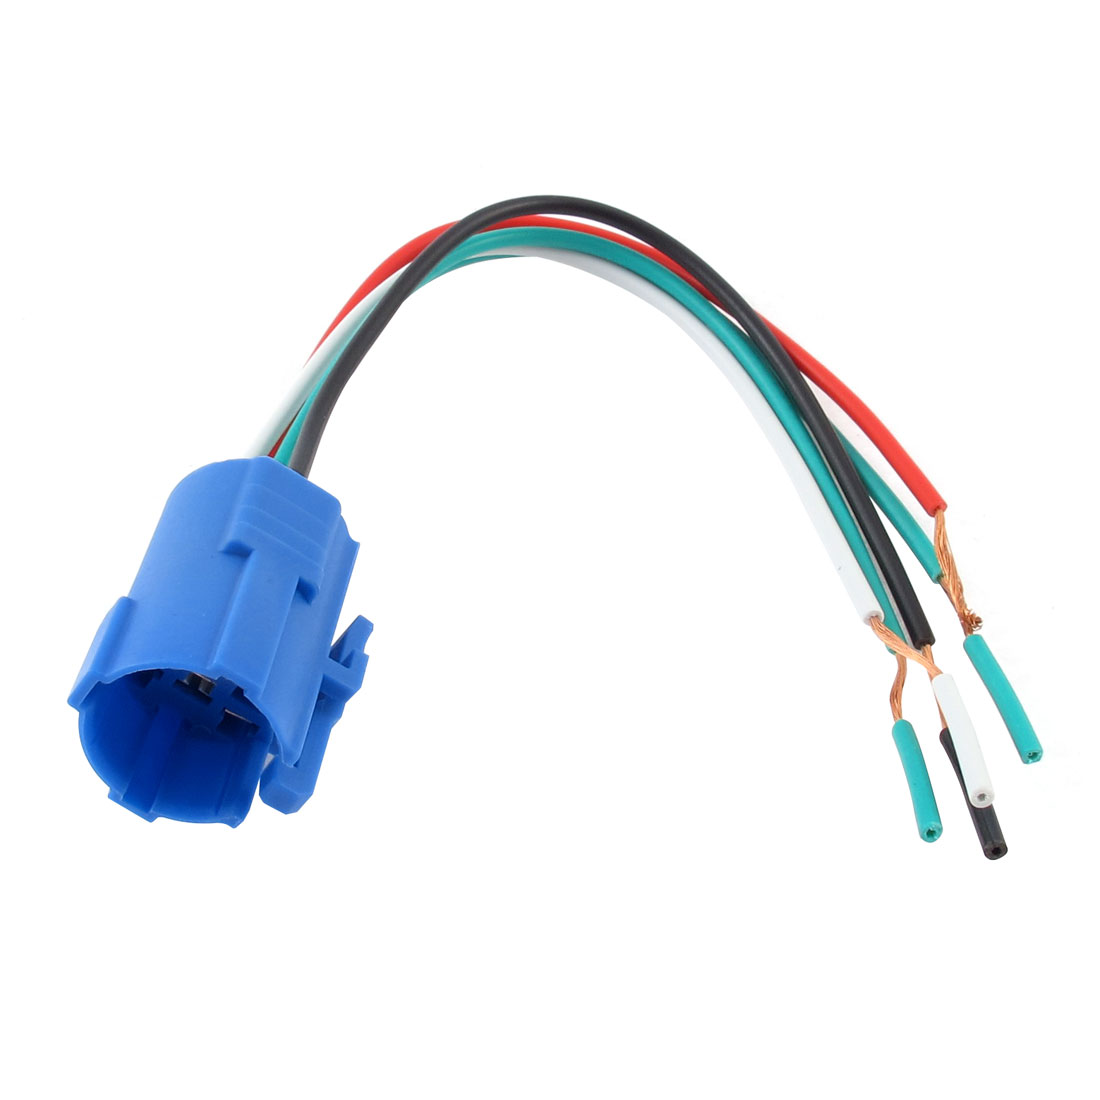 Plastic 19mm Insert Molding Mount Push Button Switch Socket Electrical Wiring Connector Wire